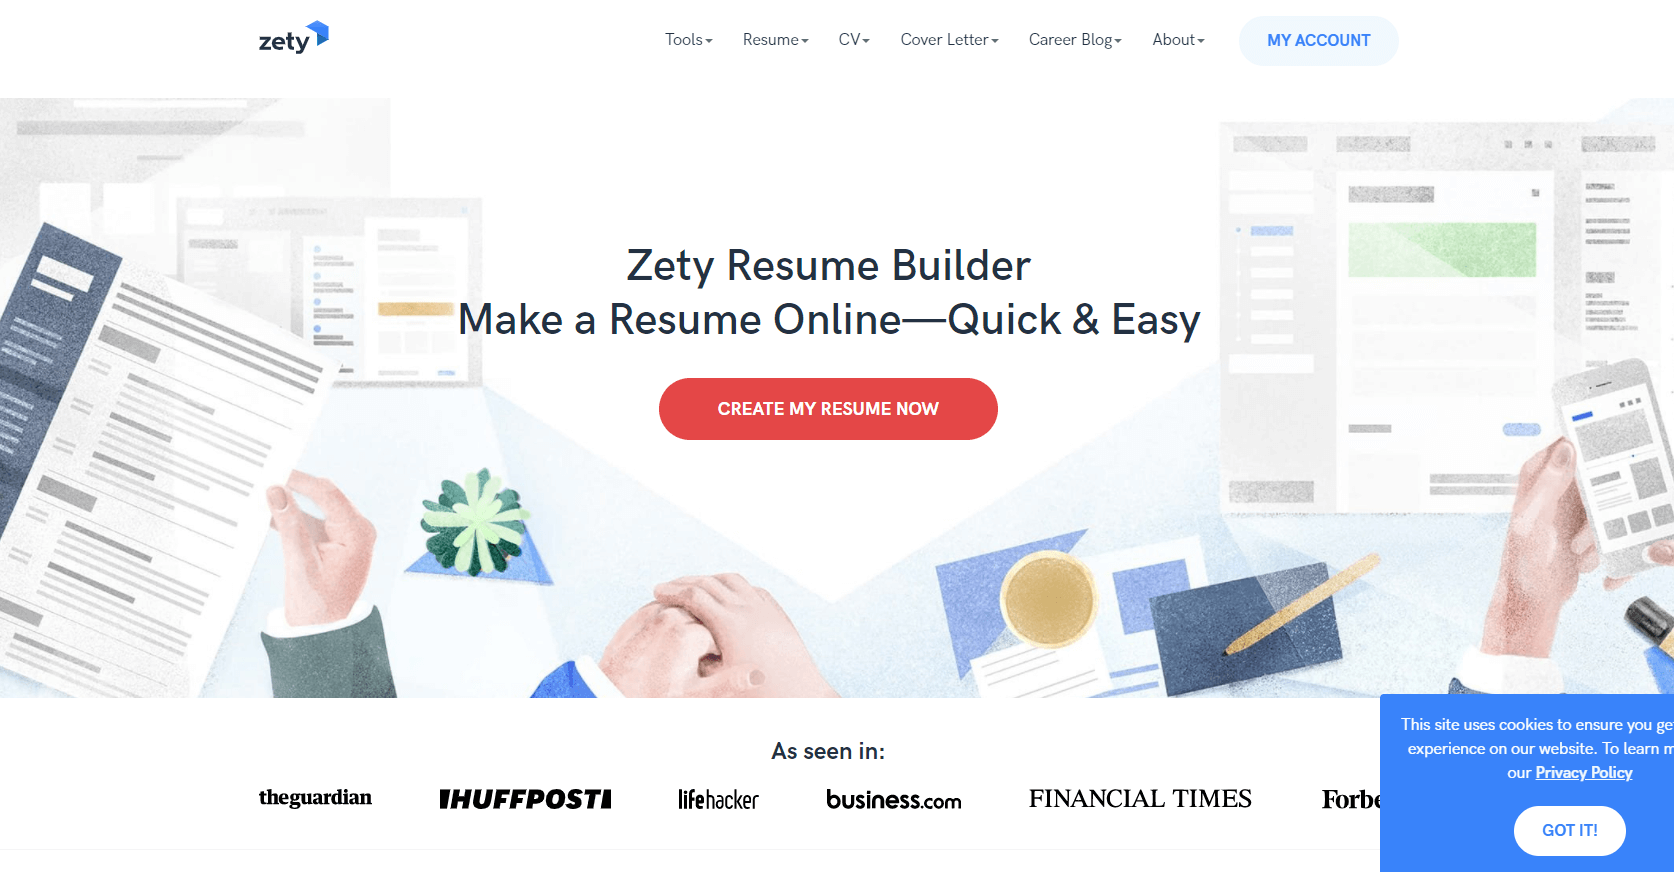 zety.com Review by TopResumeWritingServices